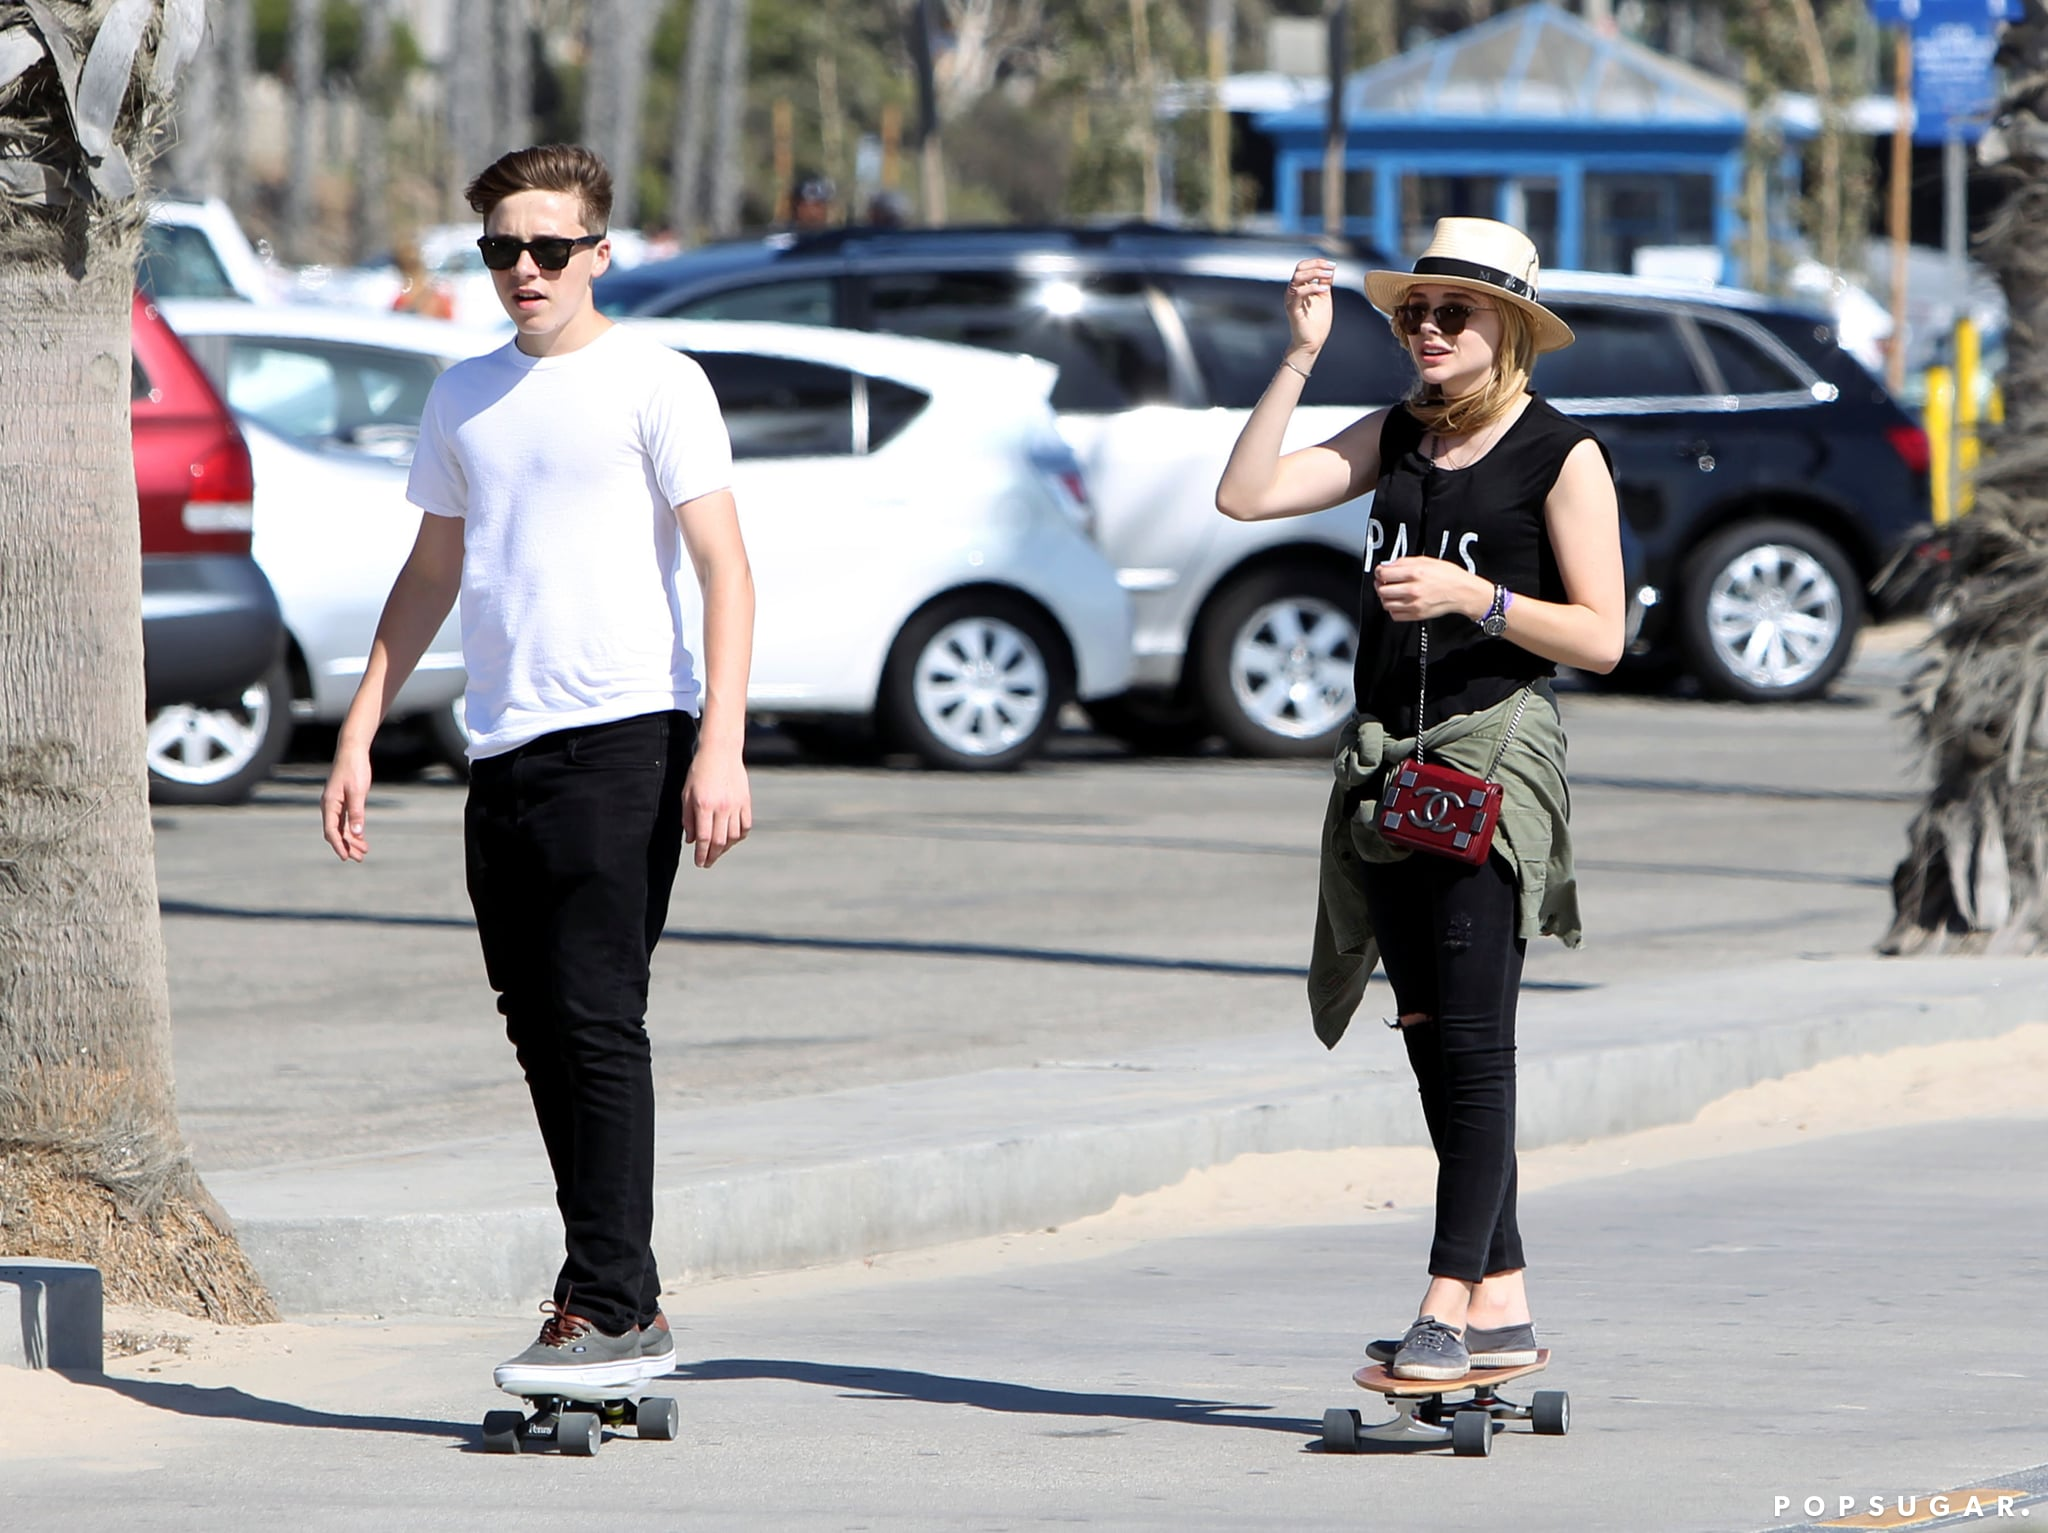 Chloë Moretz and Brooklyn Beckham Have a Truly Adorable Skate Date